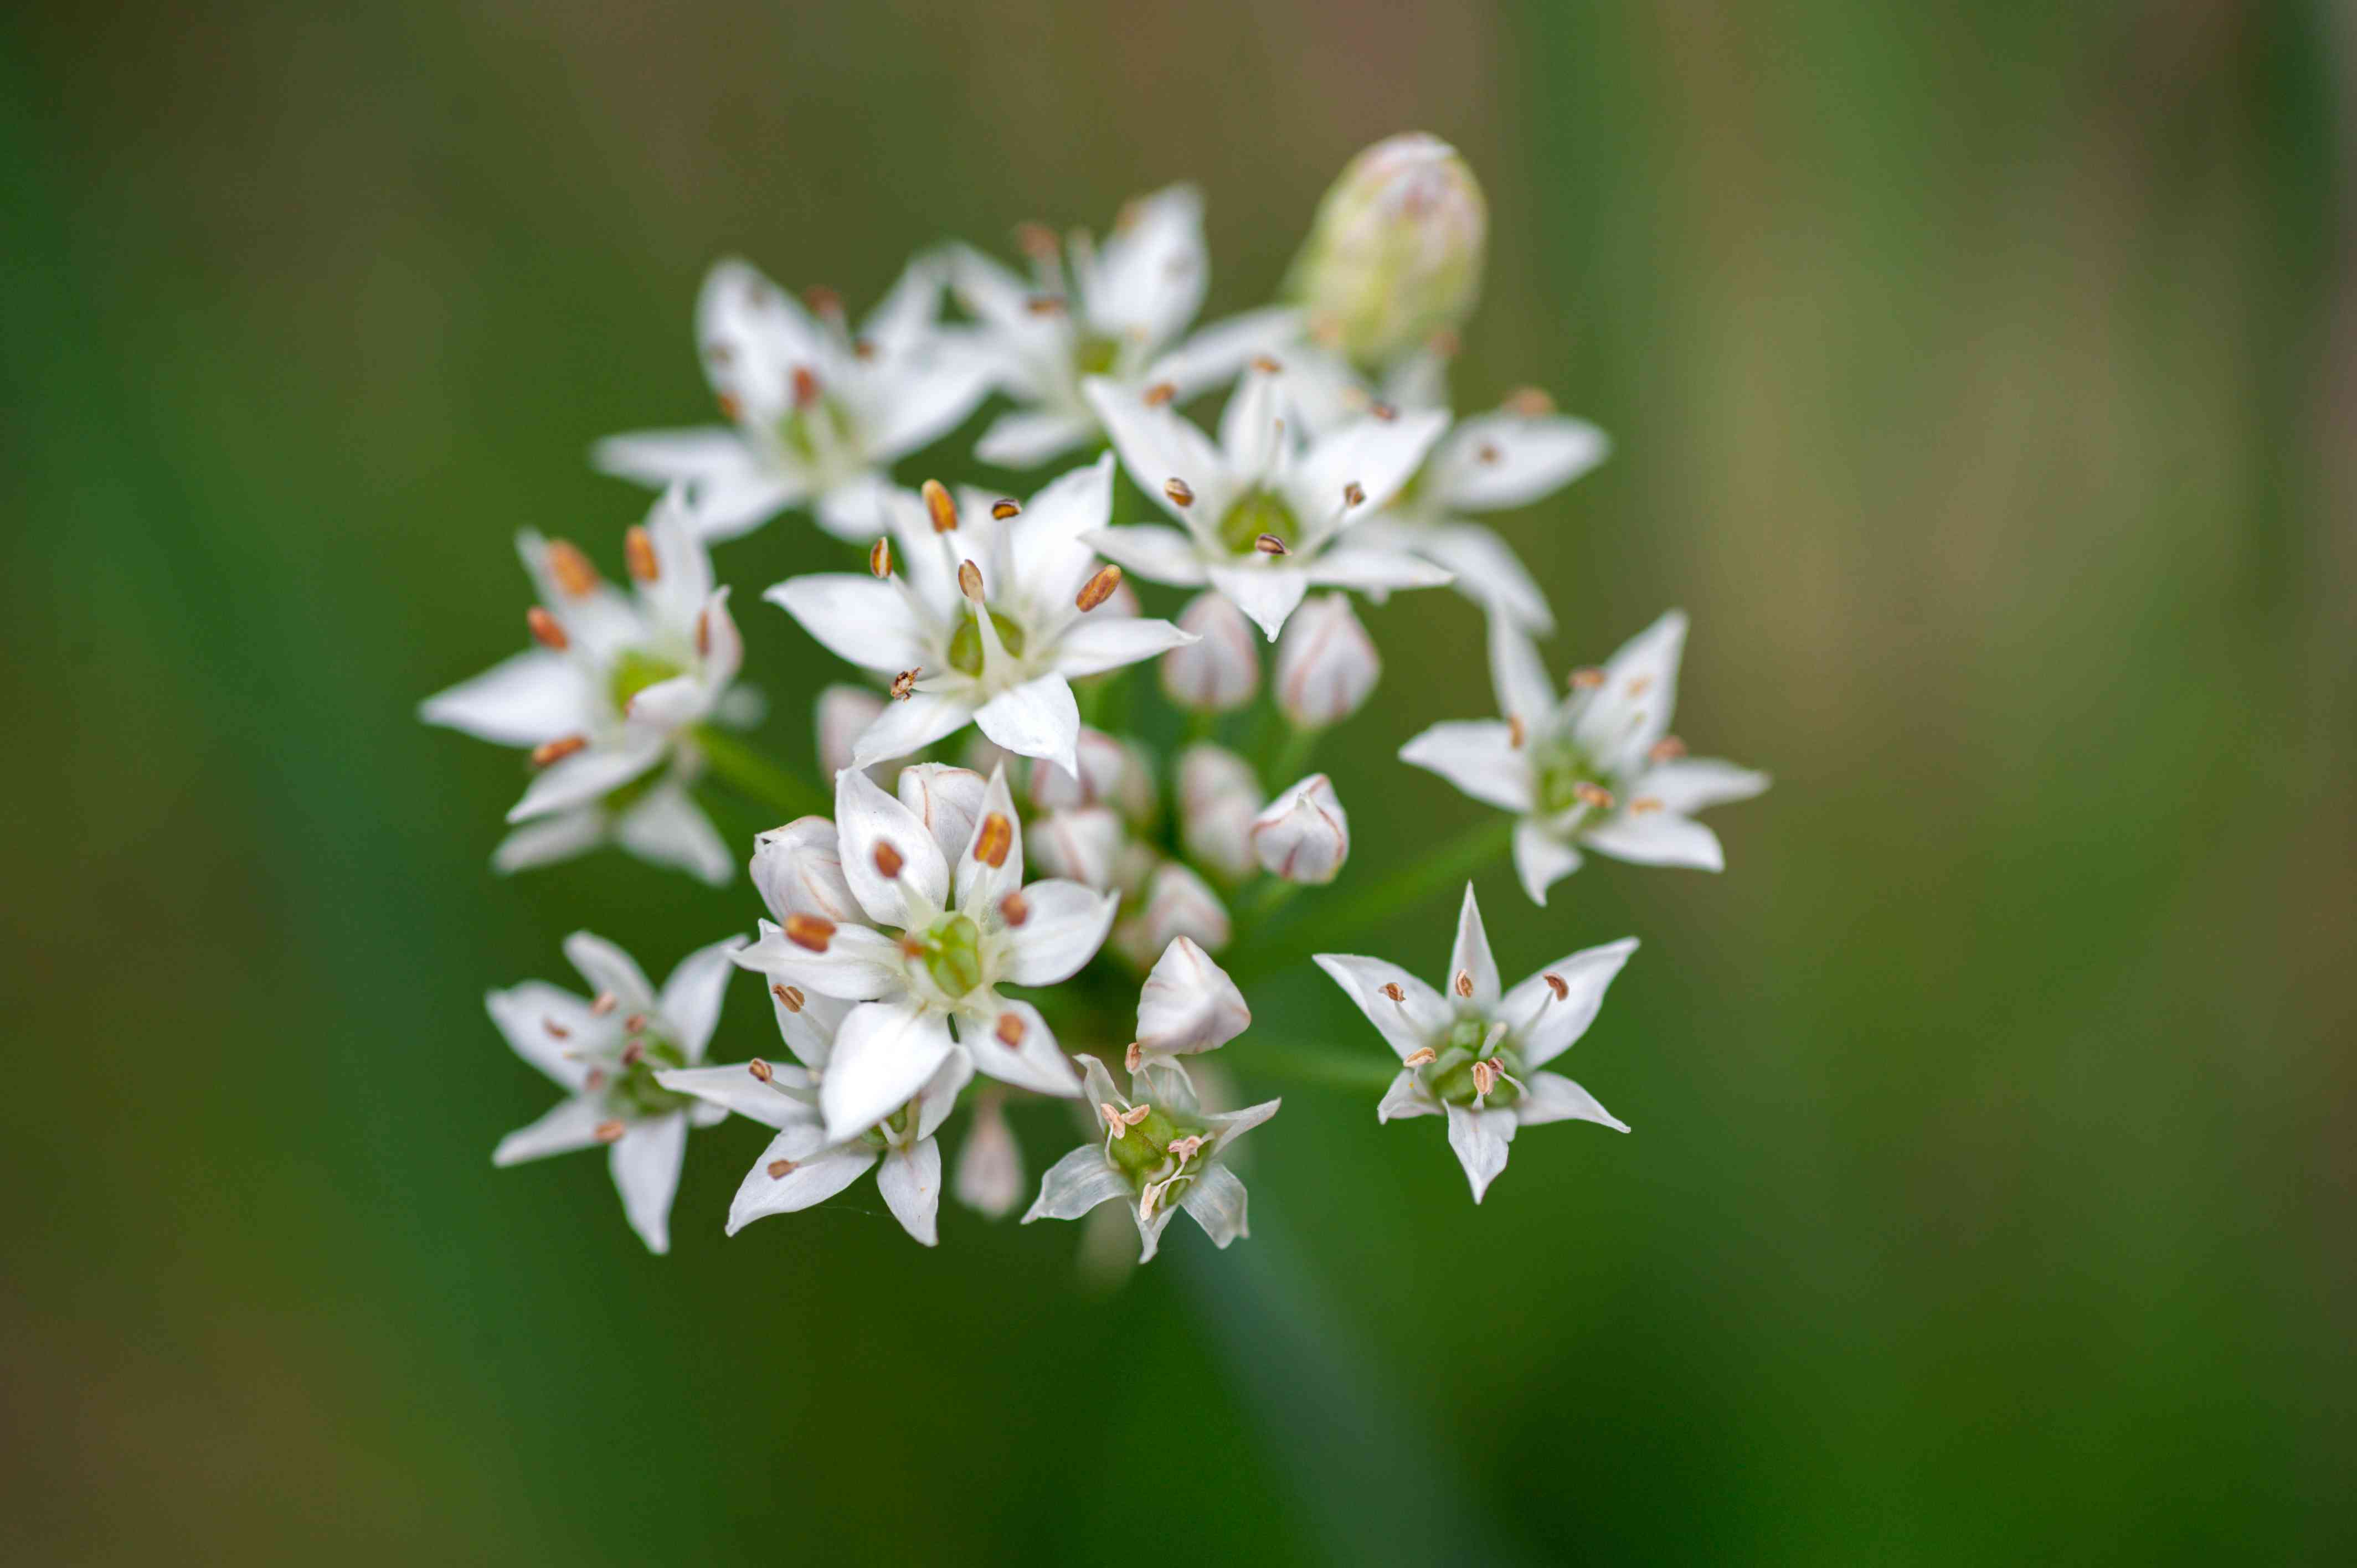 Garlic chives with small white star-shaped flowers clumped together closeup